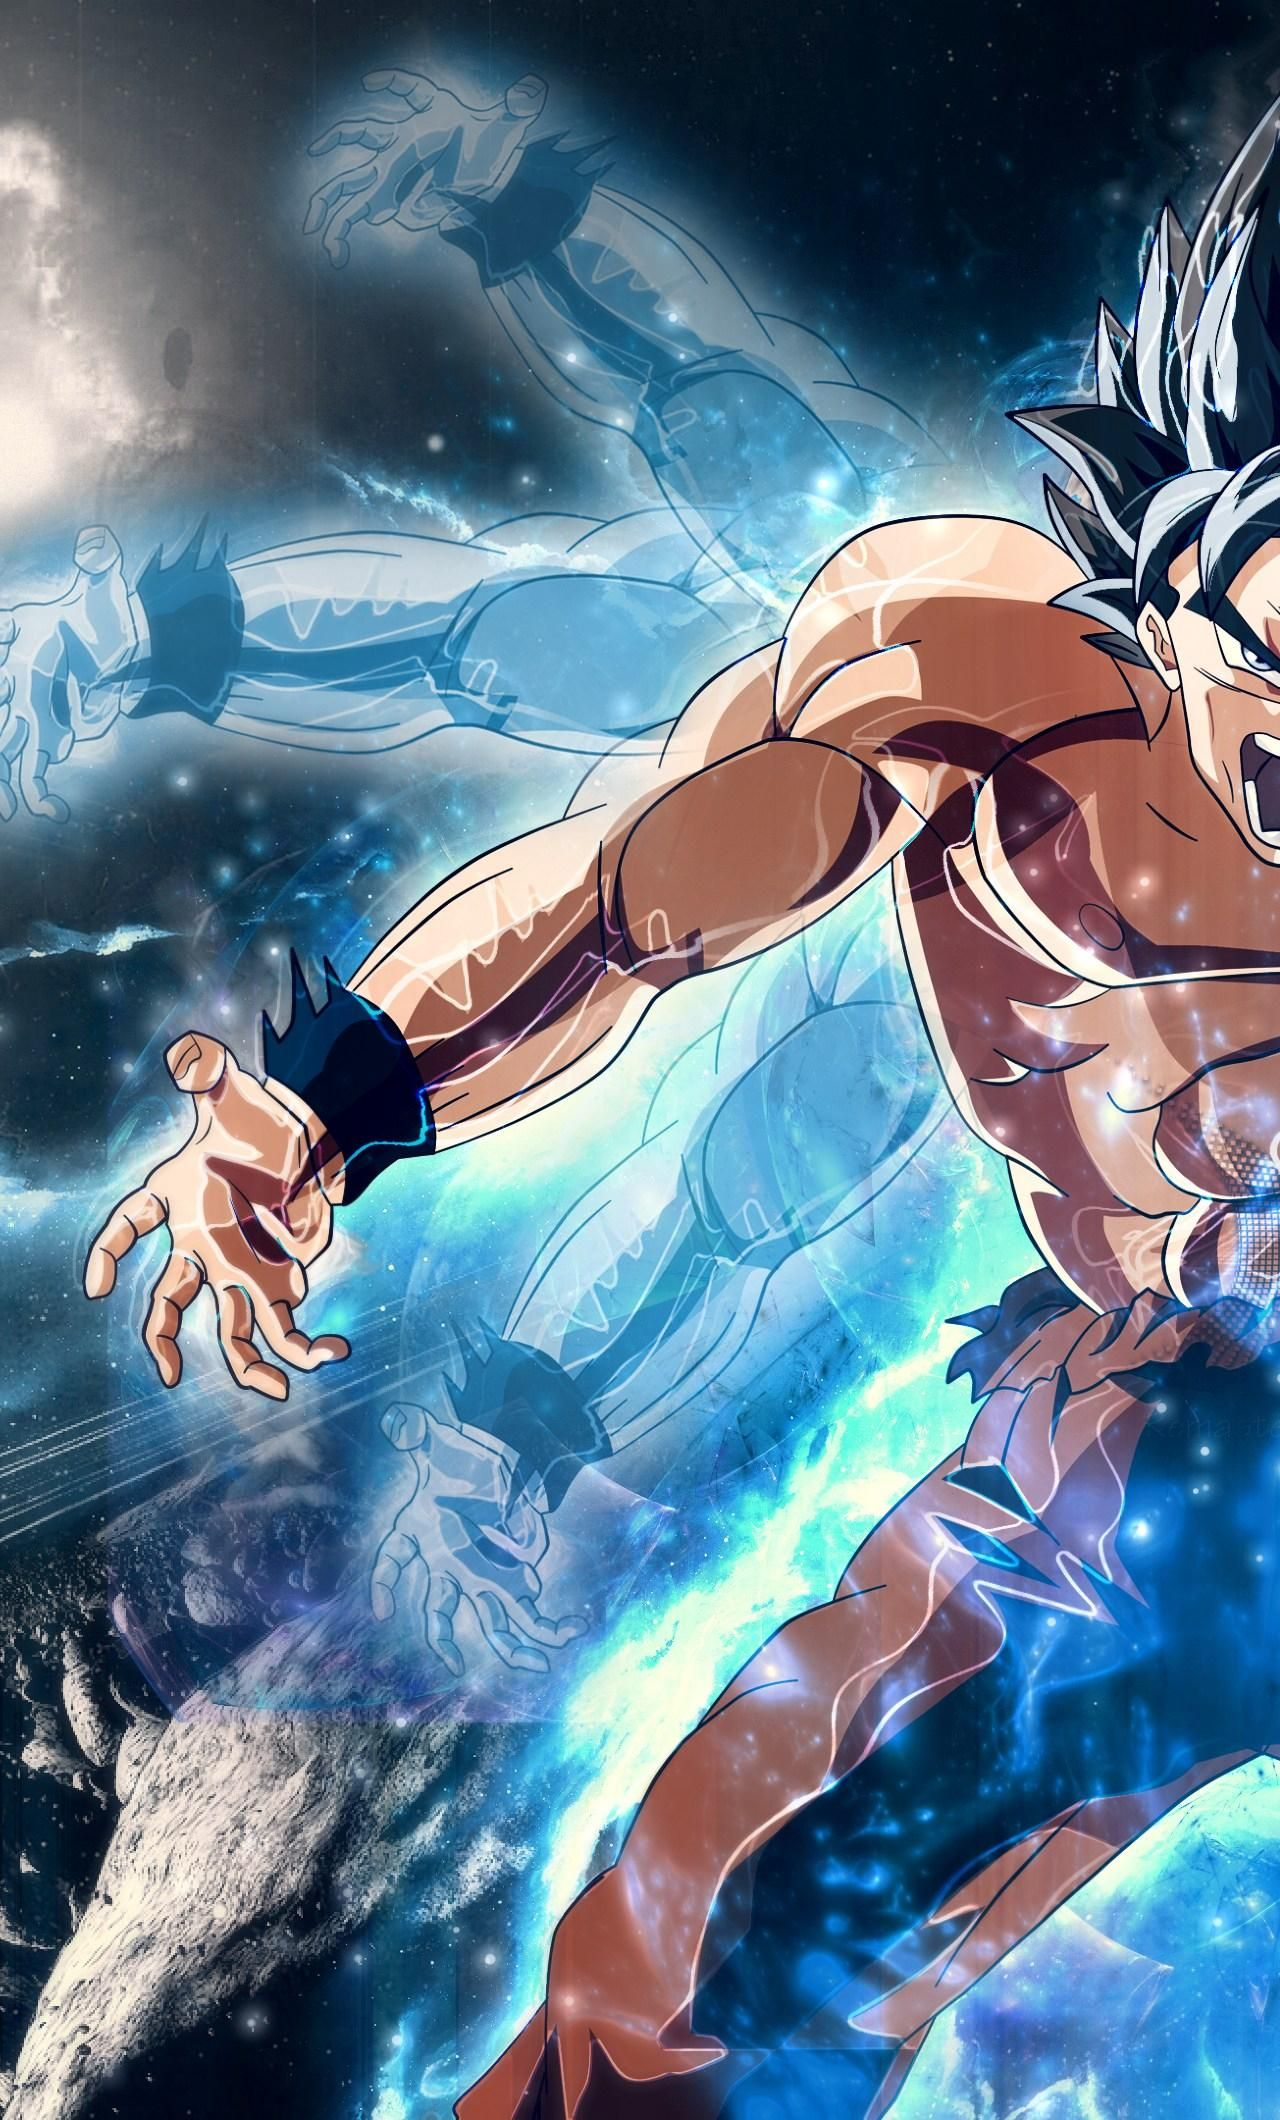 Dragon Ball Z Live Wallpaper Iphone Xr 1280x2120